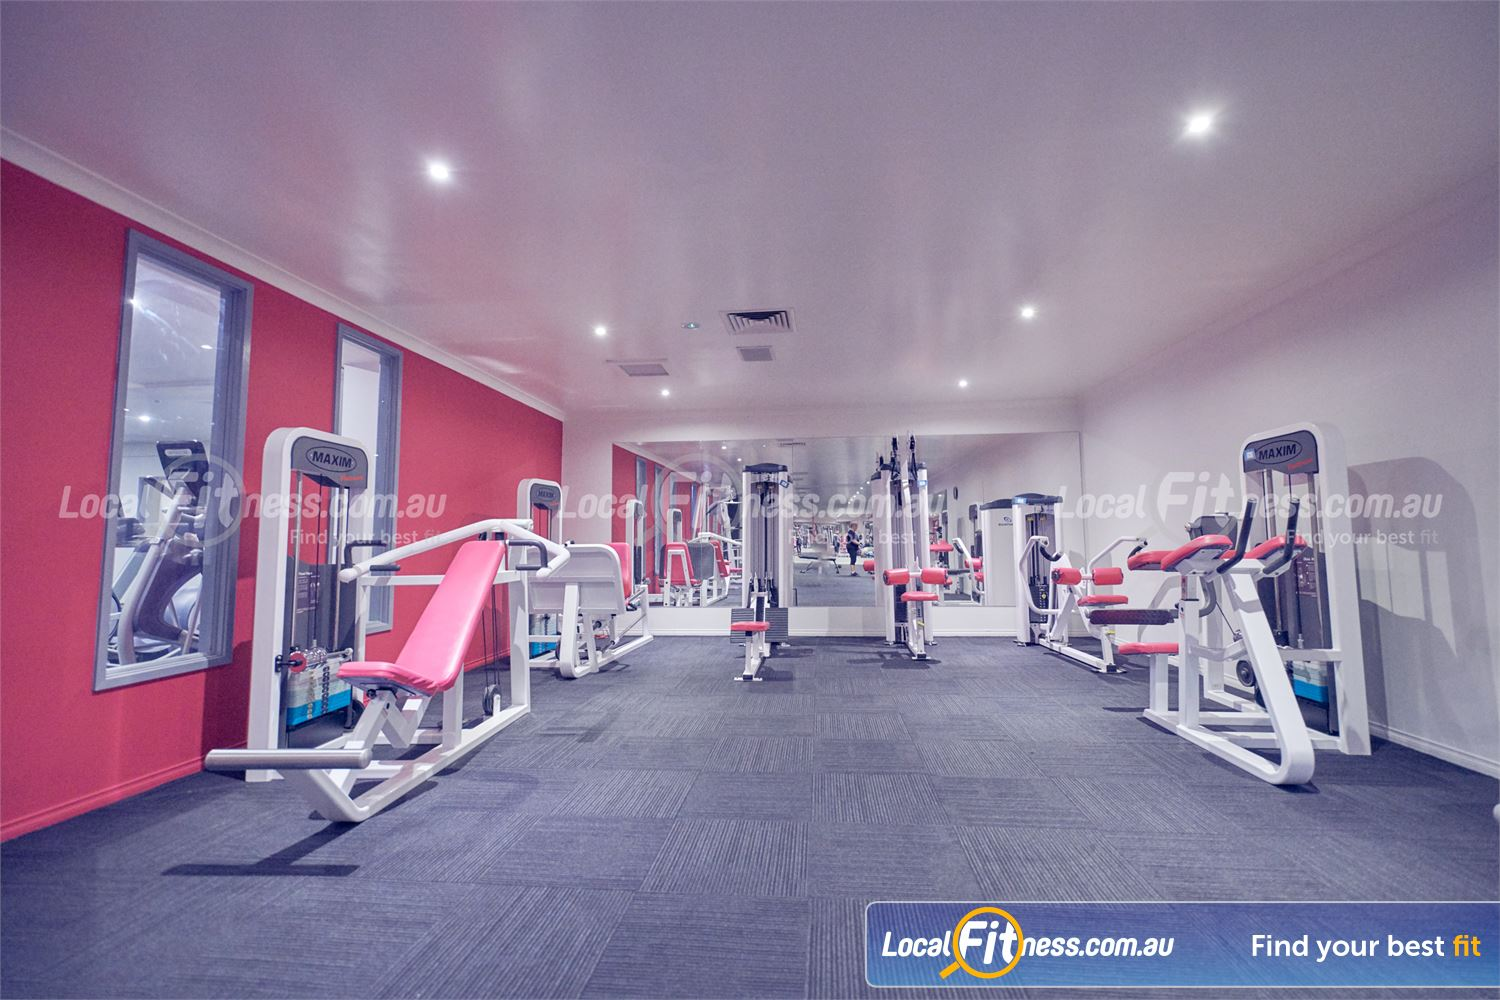 Fernwood Fitness Bulleen The fully equipped Fernwood Bulleen gym is open around the clock 24/7.